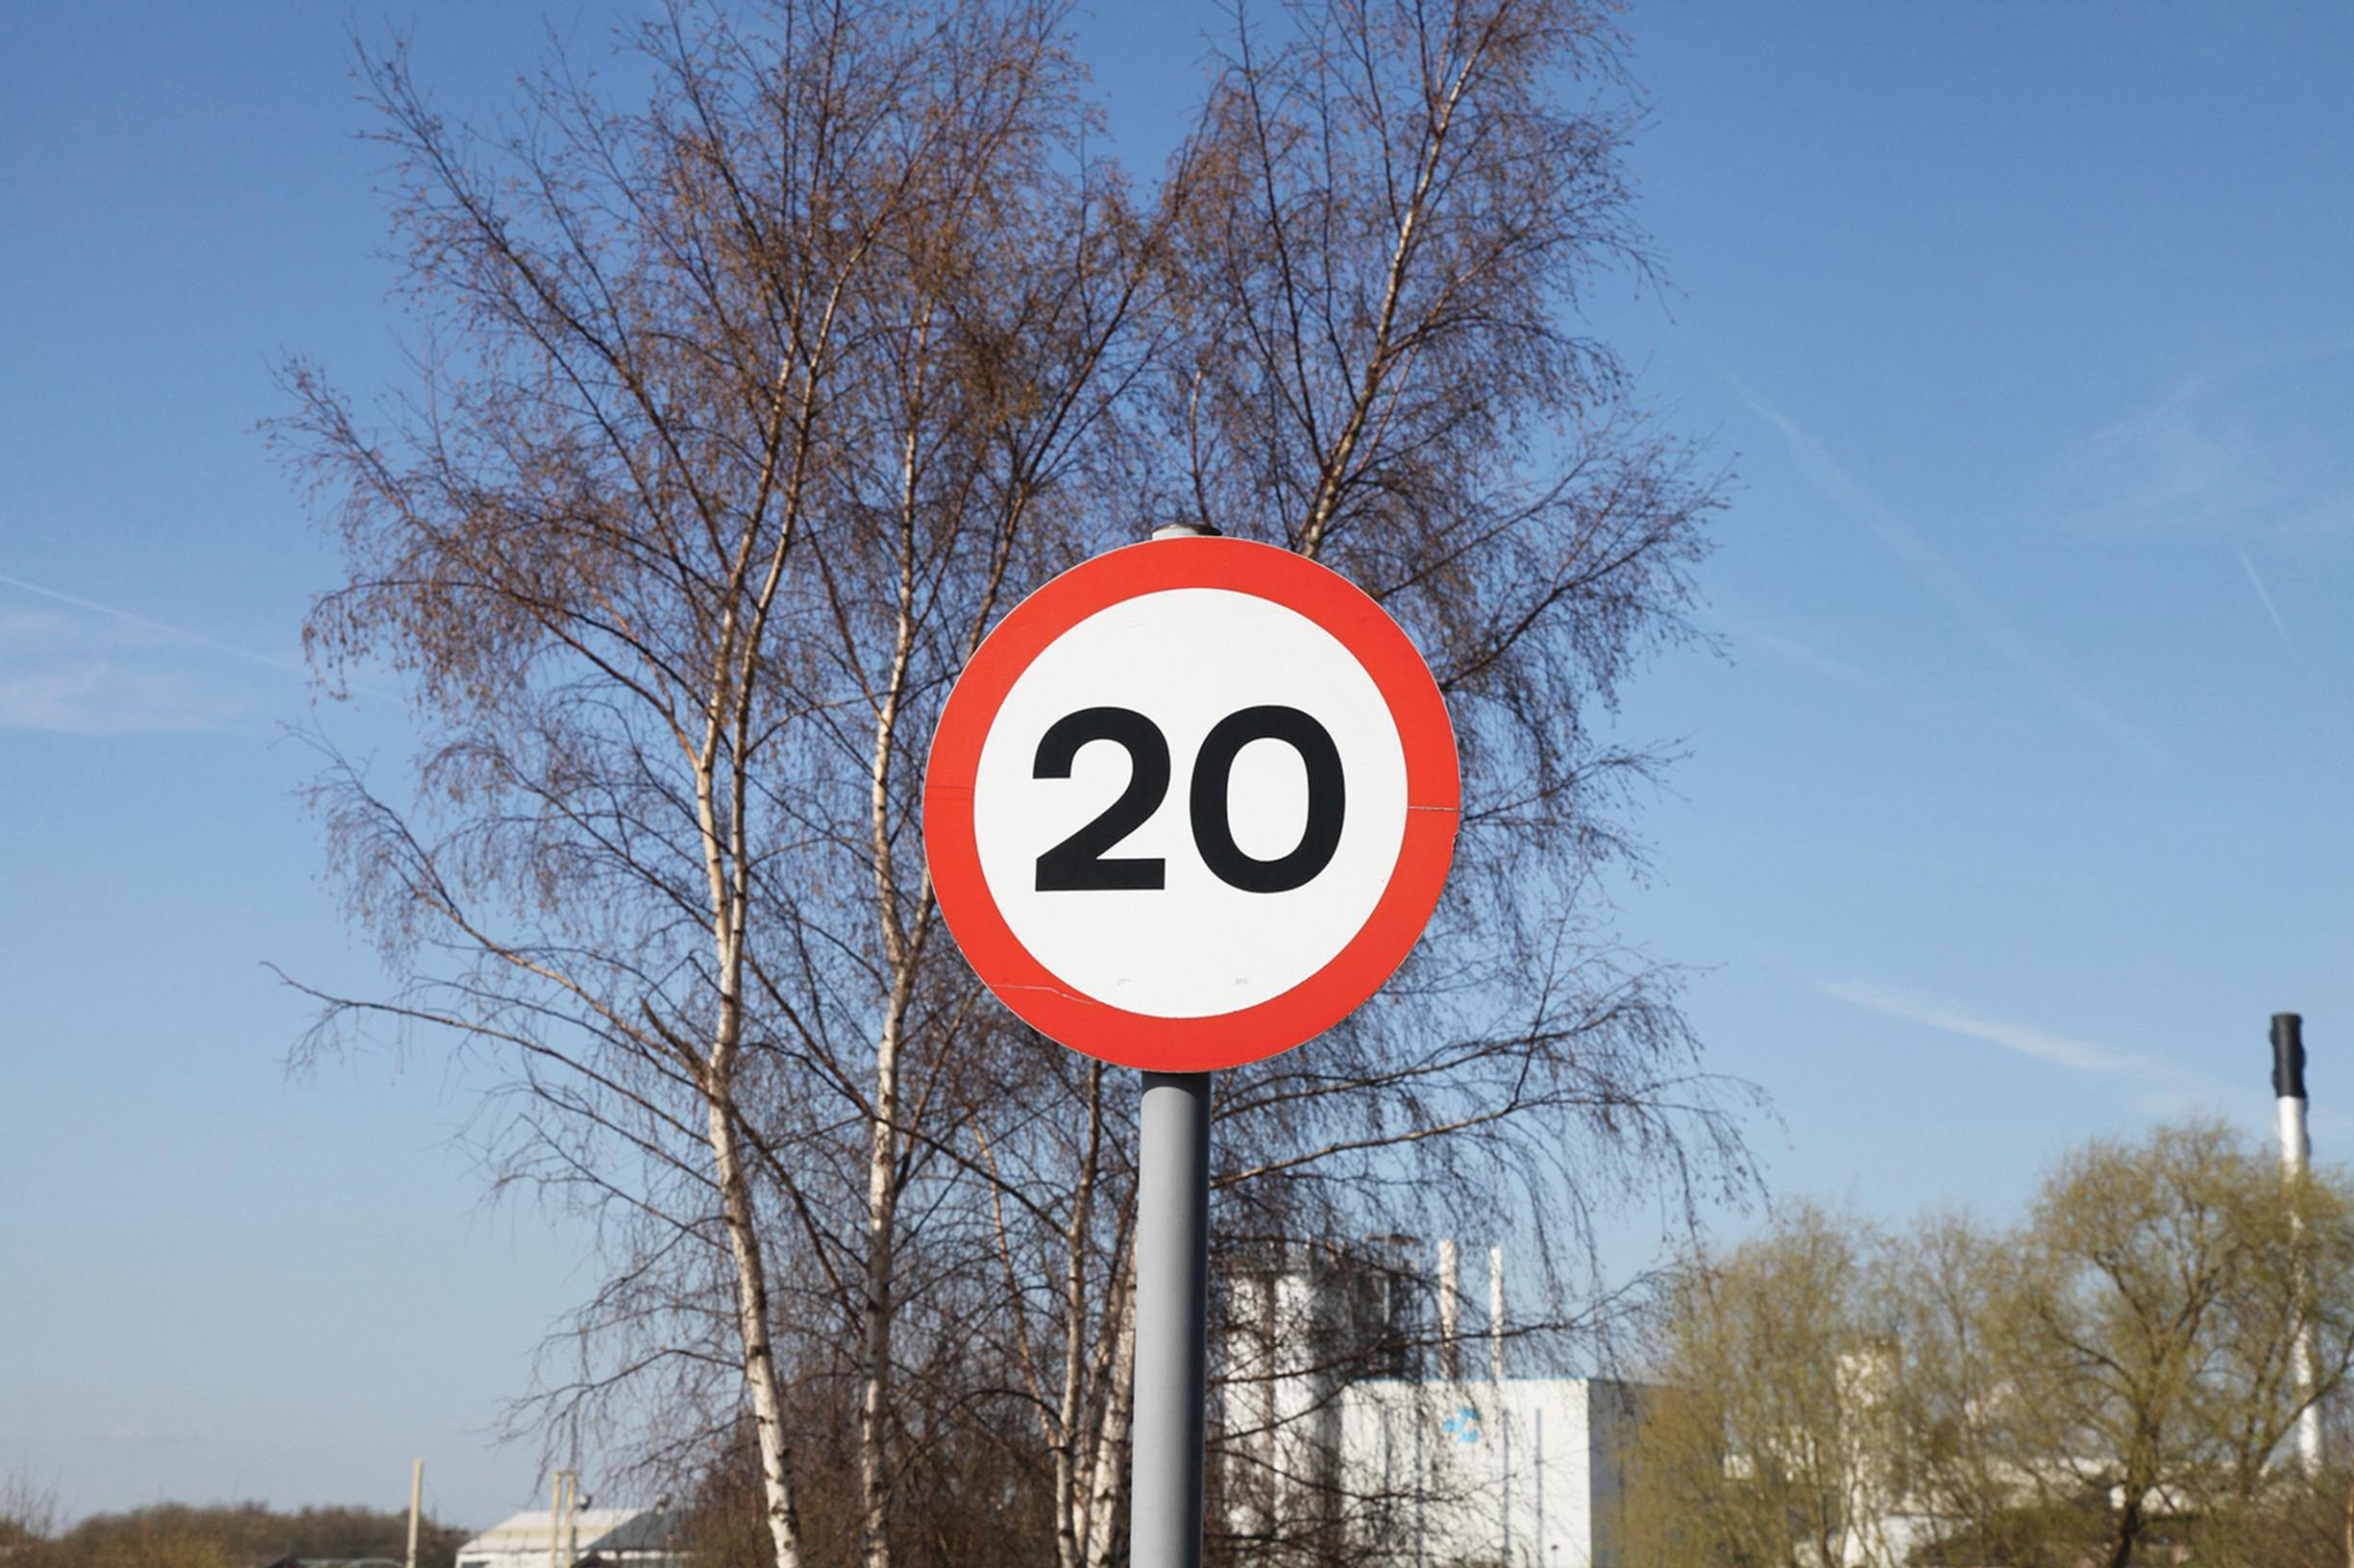 Hampshire will not  implement any more signed-only 20mph limits